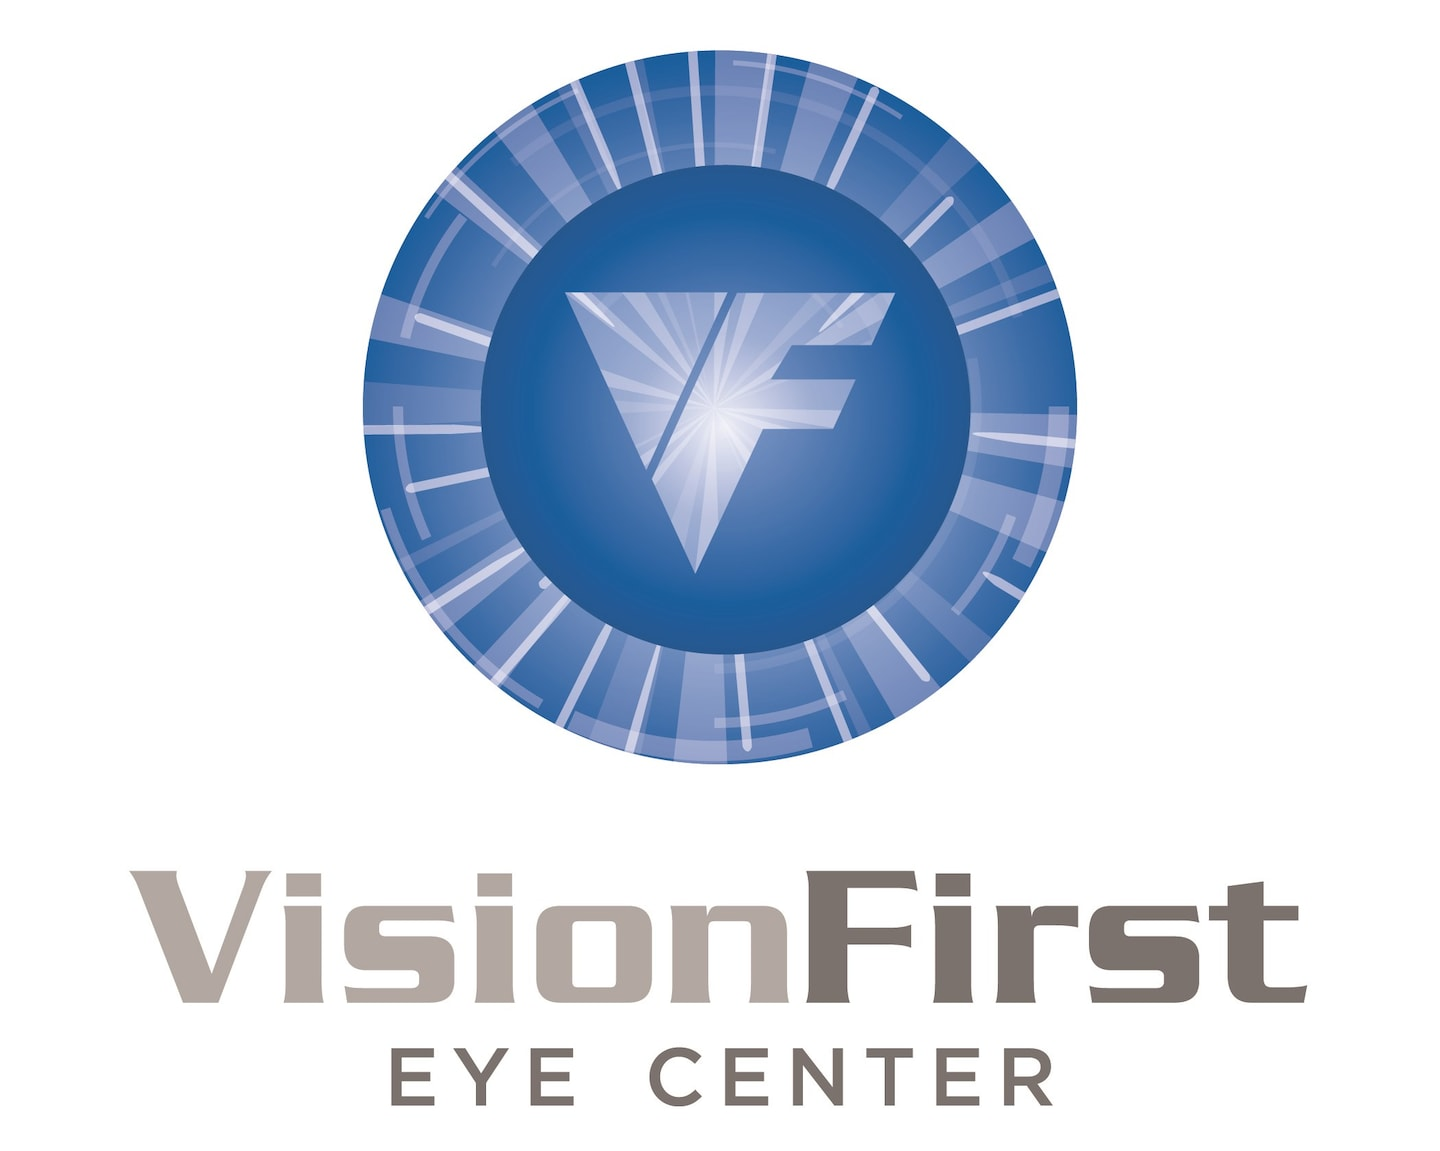 Vision First Eye Center